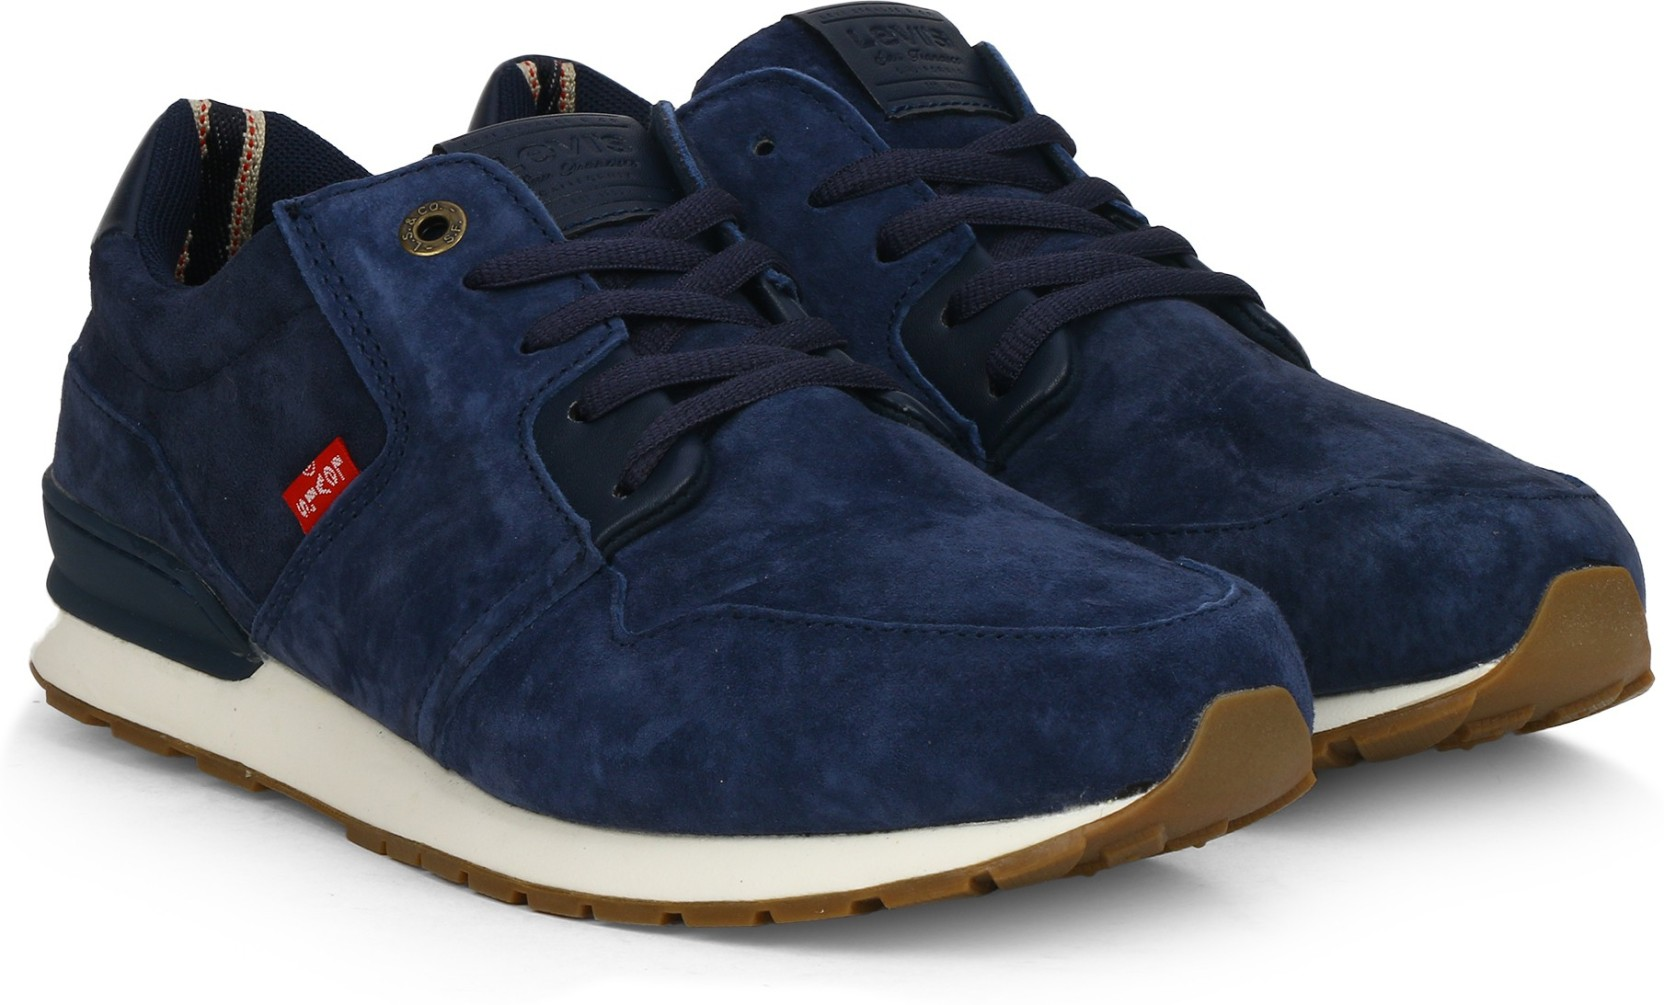 61faf254e35 Levi's NY RUNNER Sneakers For Men - Buy NAVY BLUE Color Levi's NY ...